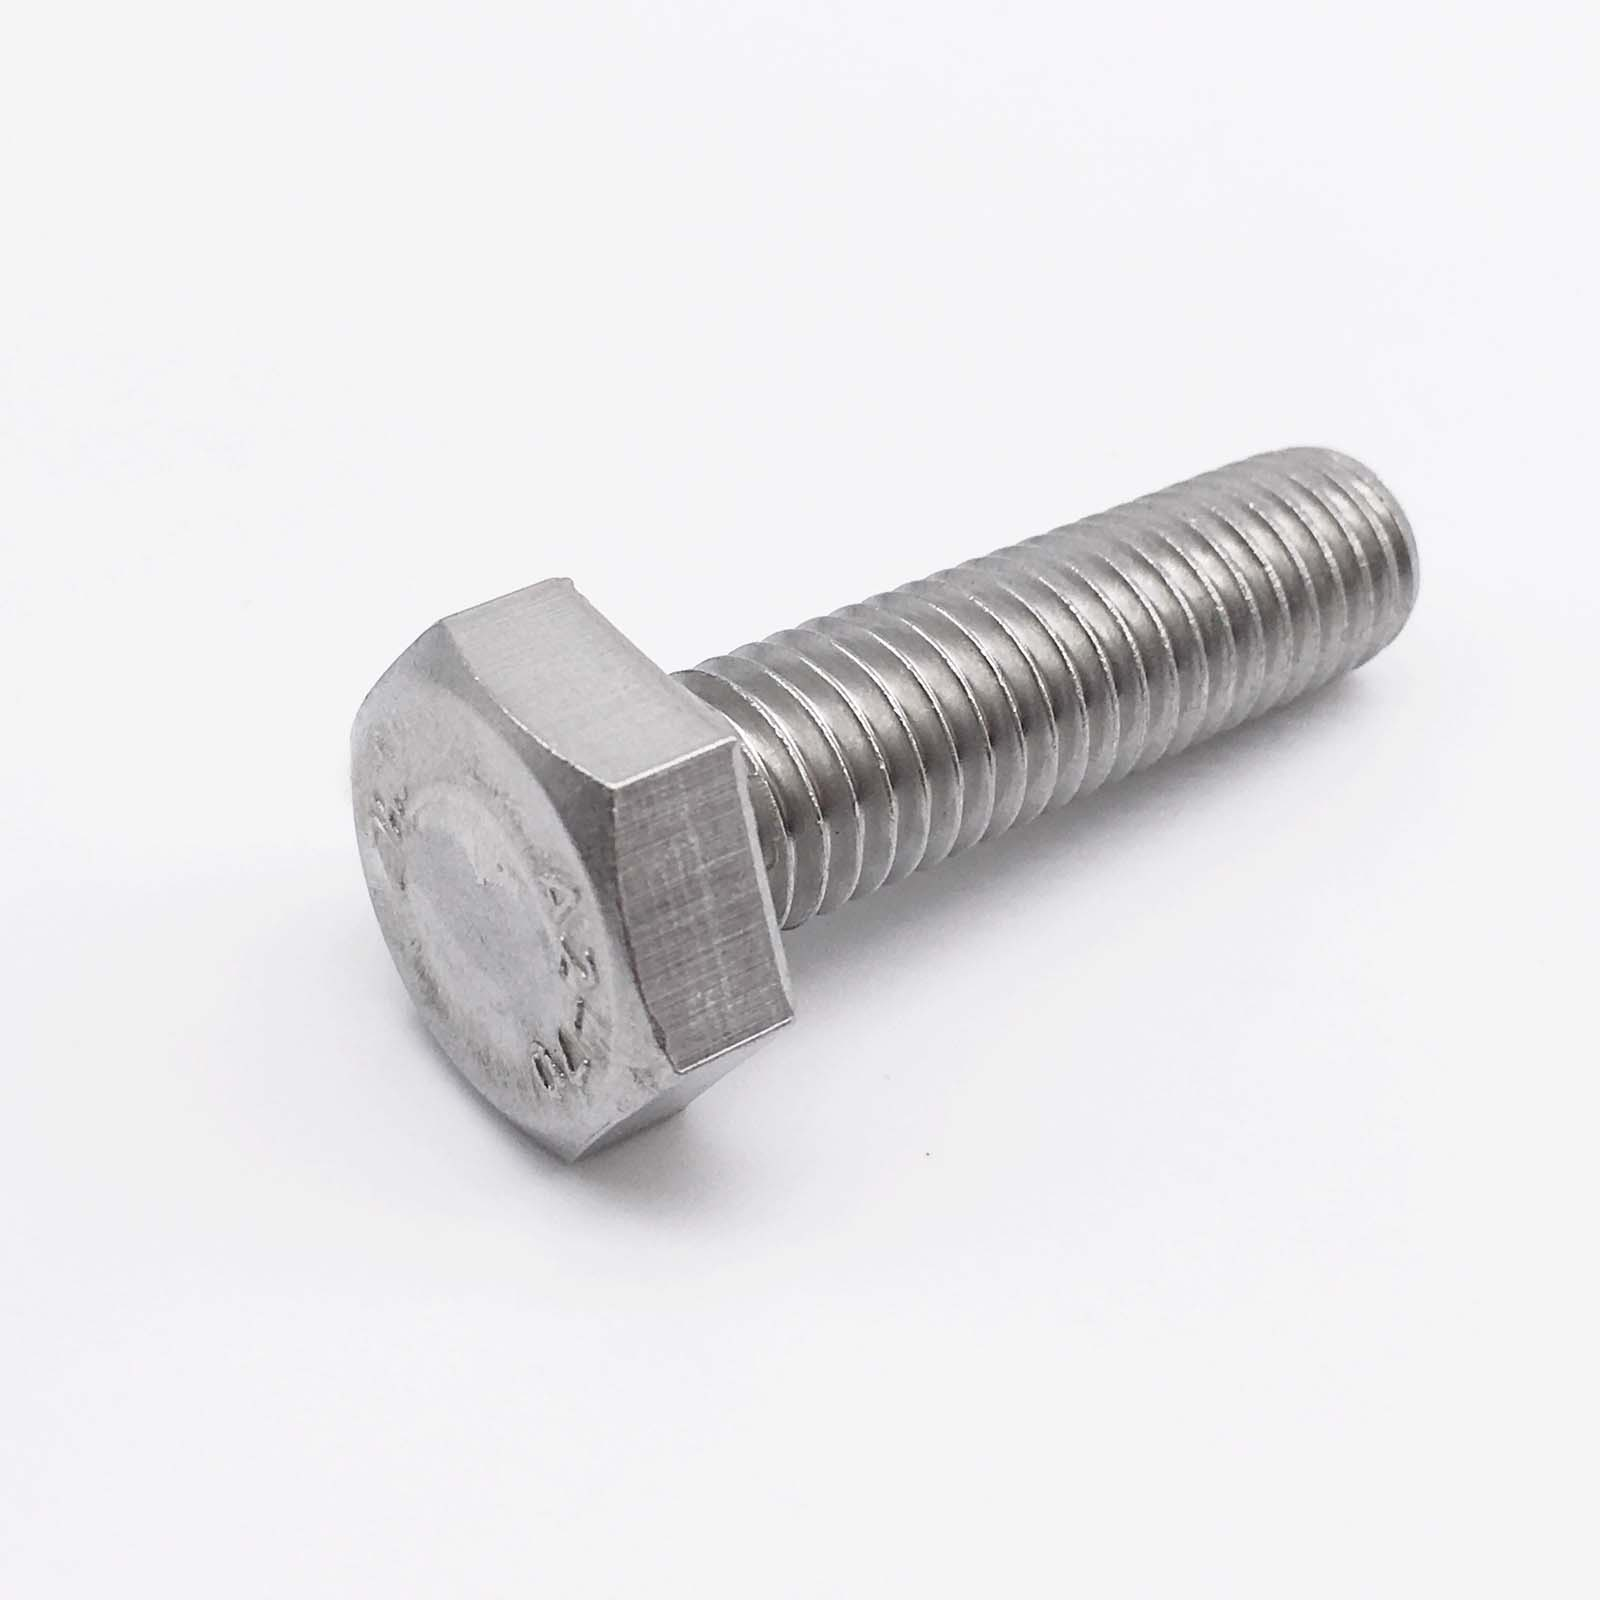 M6 * 85 Hexagon head bolts steel A2 SUS 304 stainless steel bolts 100 pieces<br><br>Aliexpress